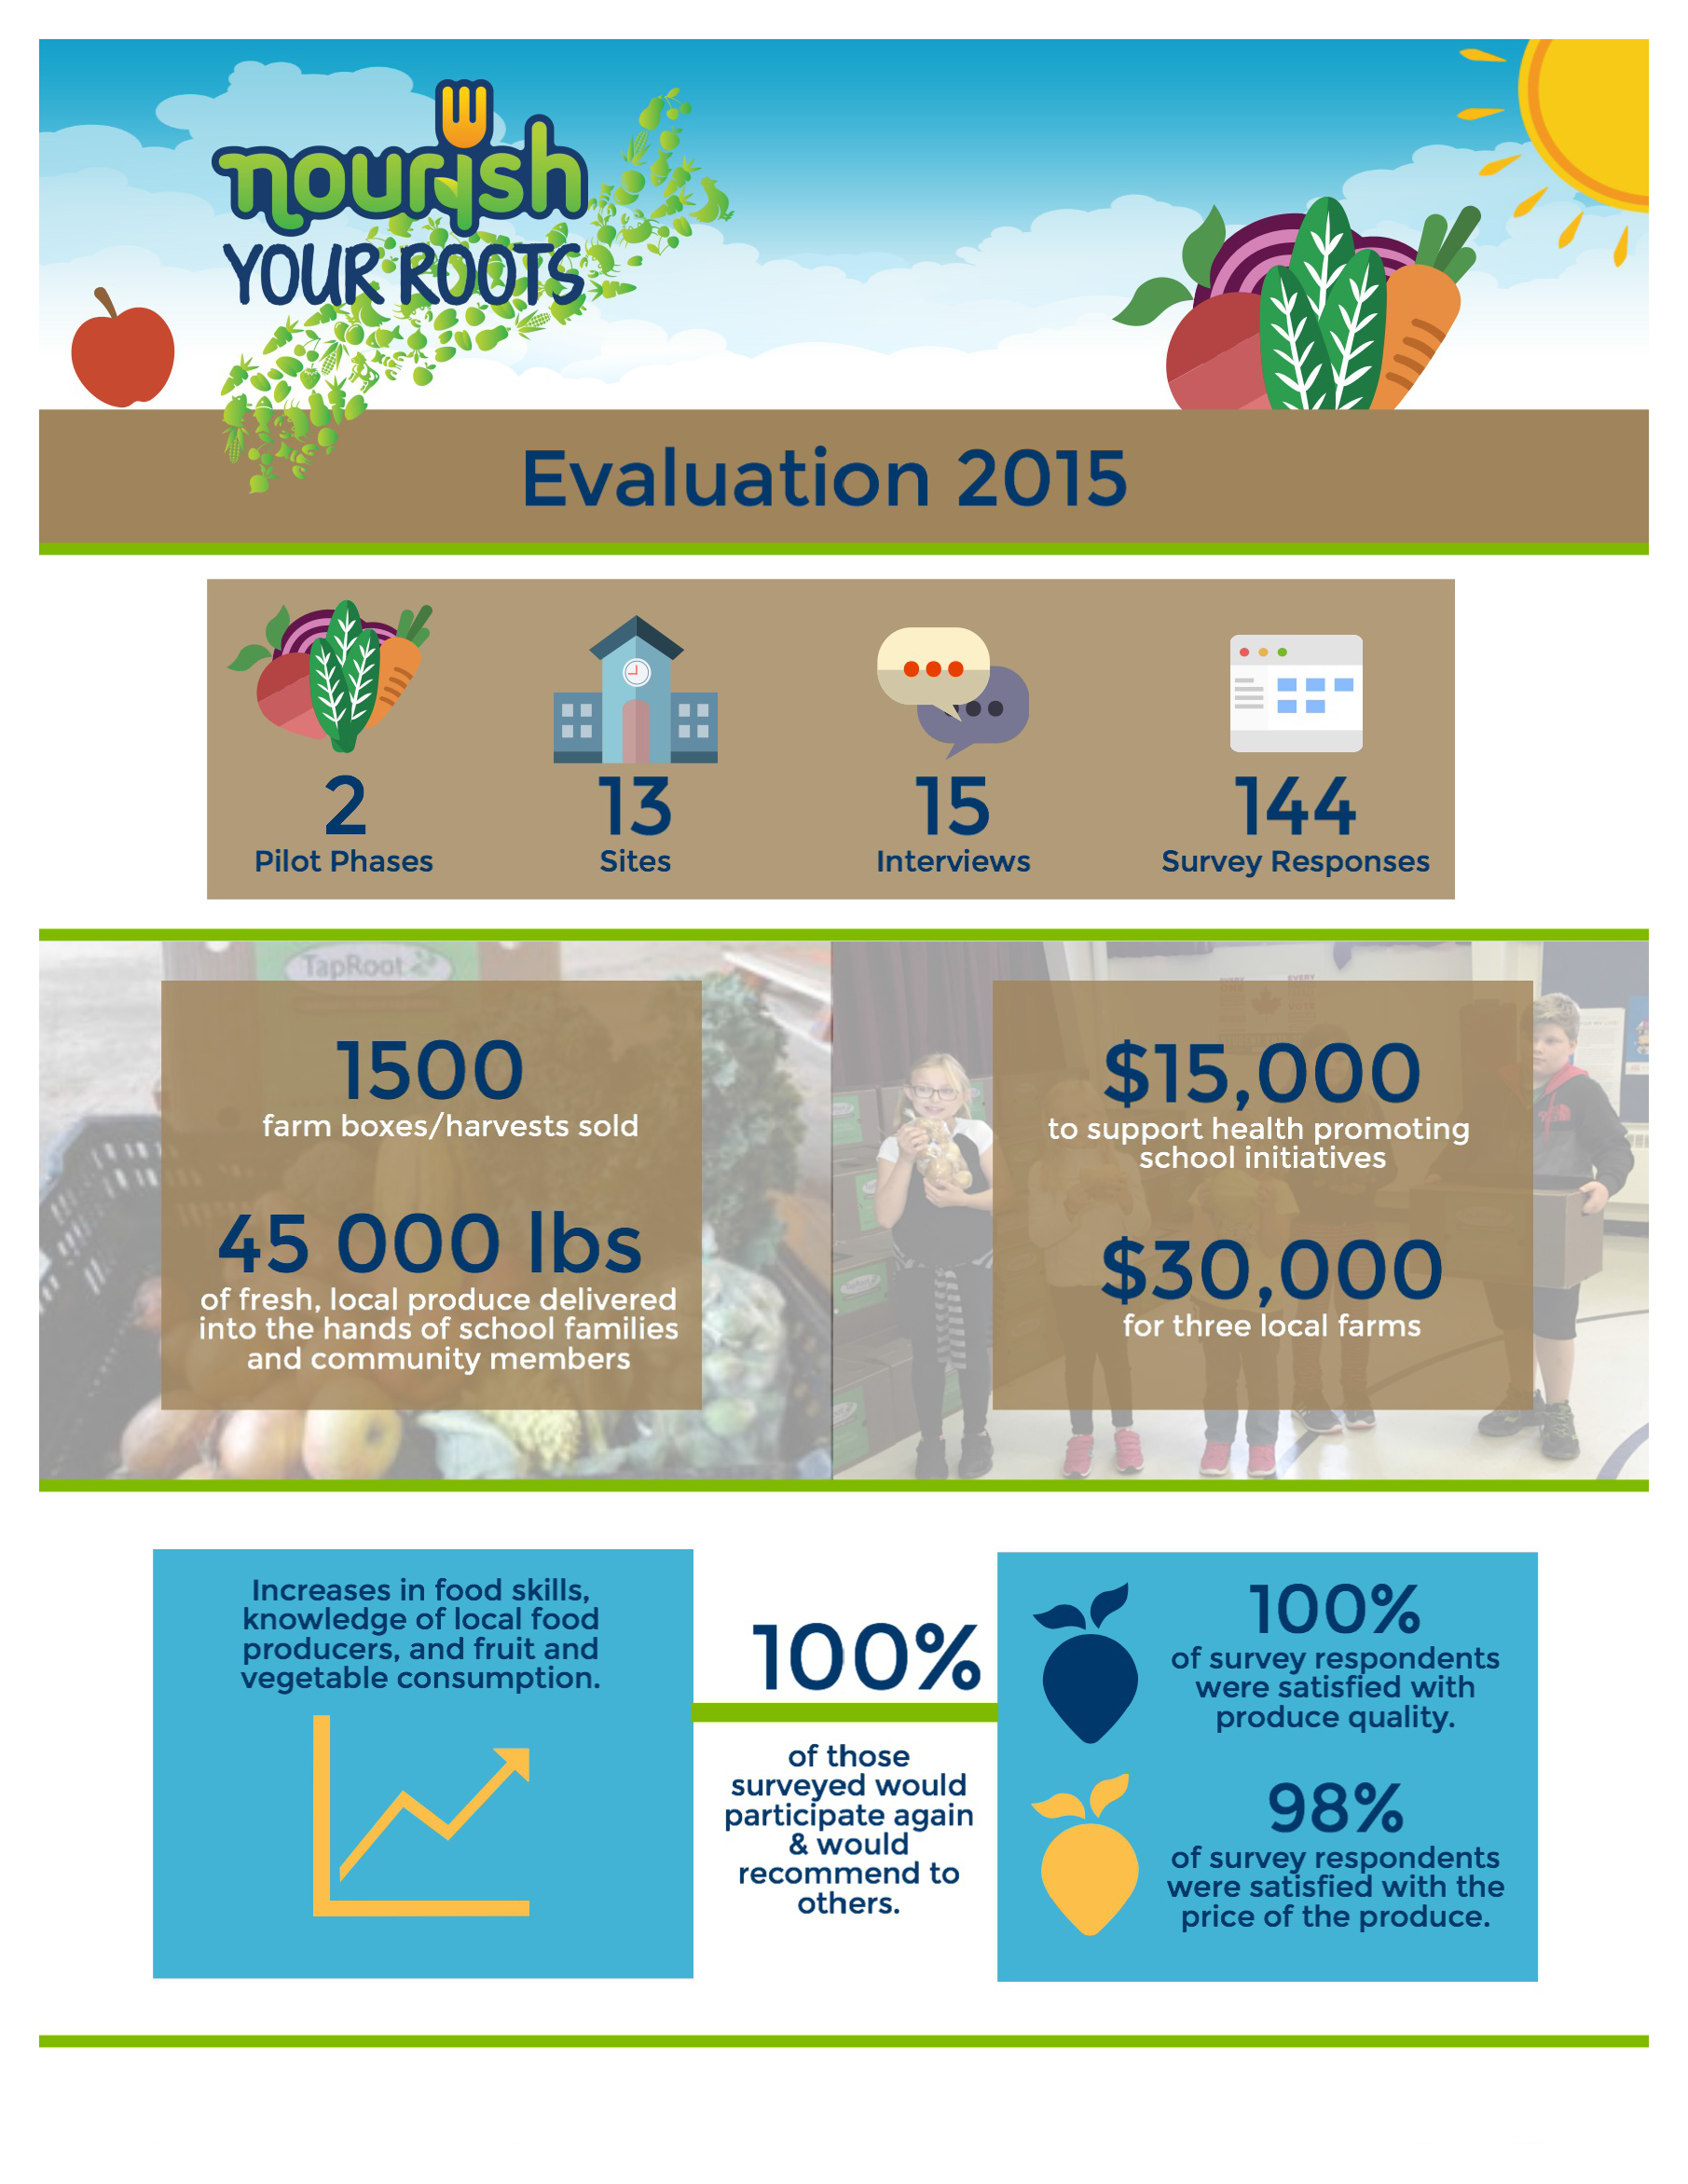 2015 Nourish Your Roots Evaluation -  Infographic